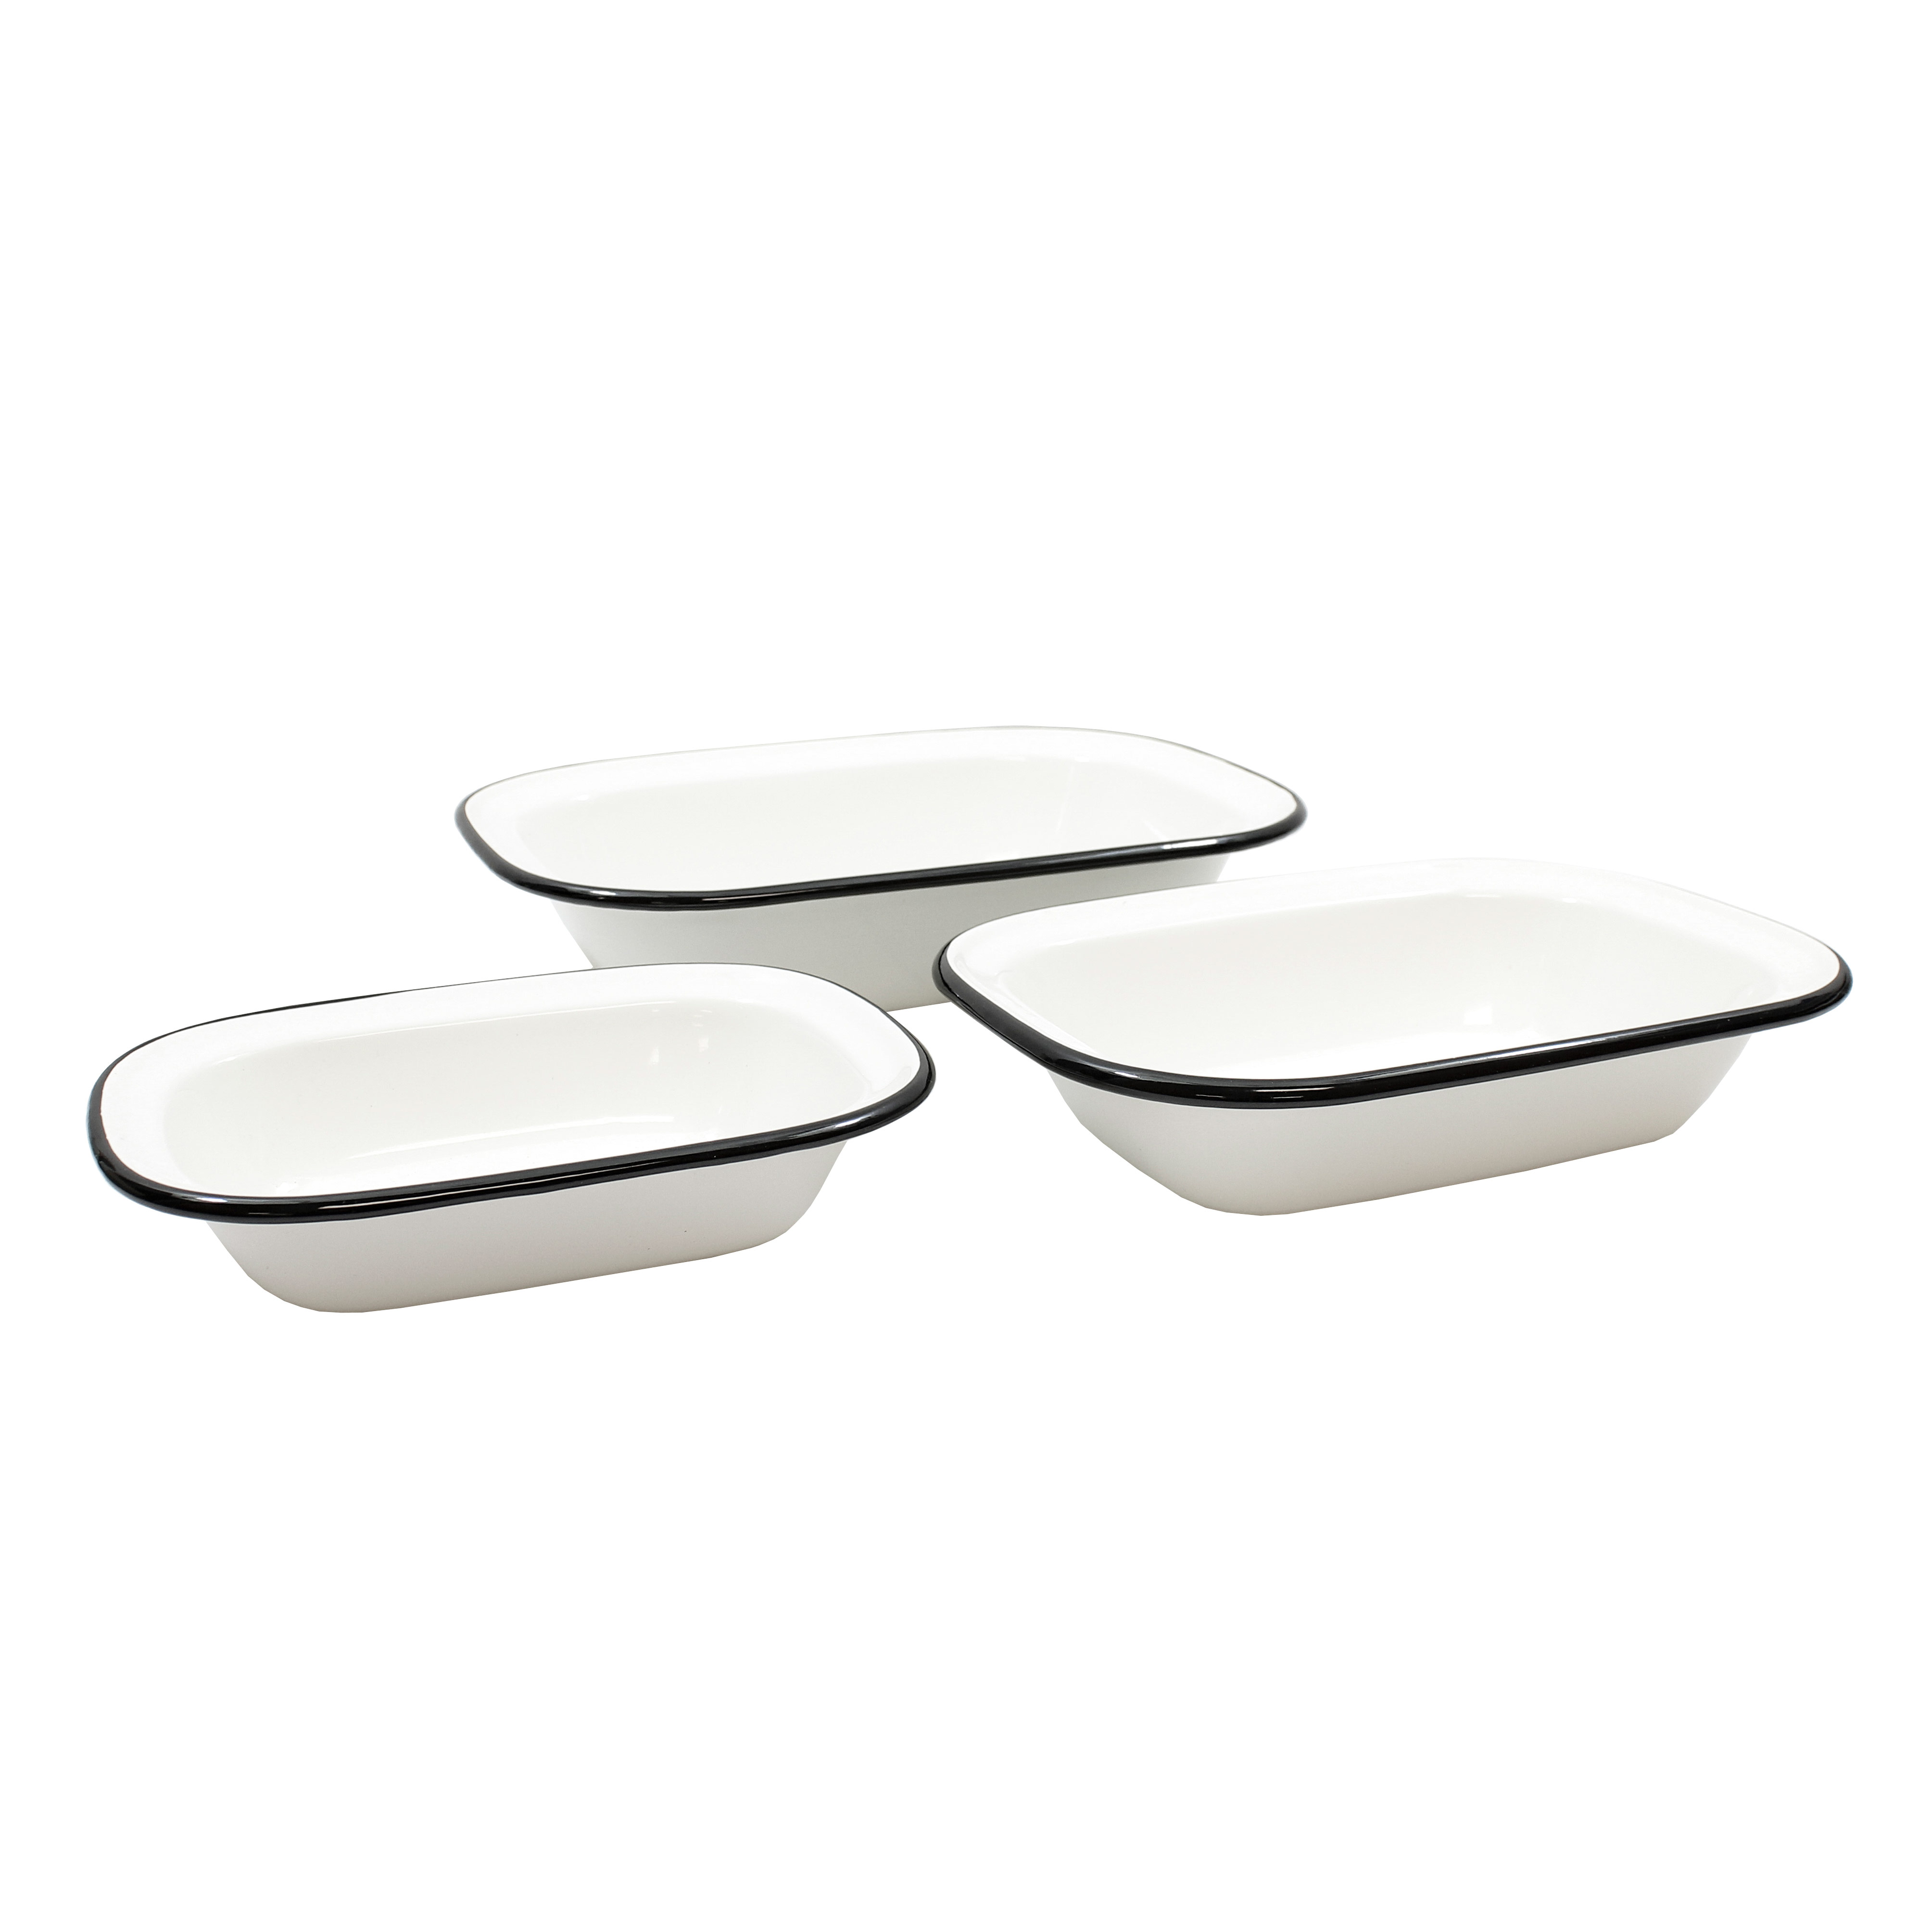 TableCraft Products 80015 serving & display tray